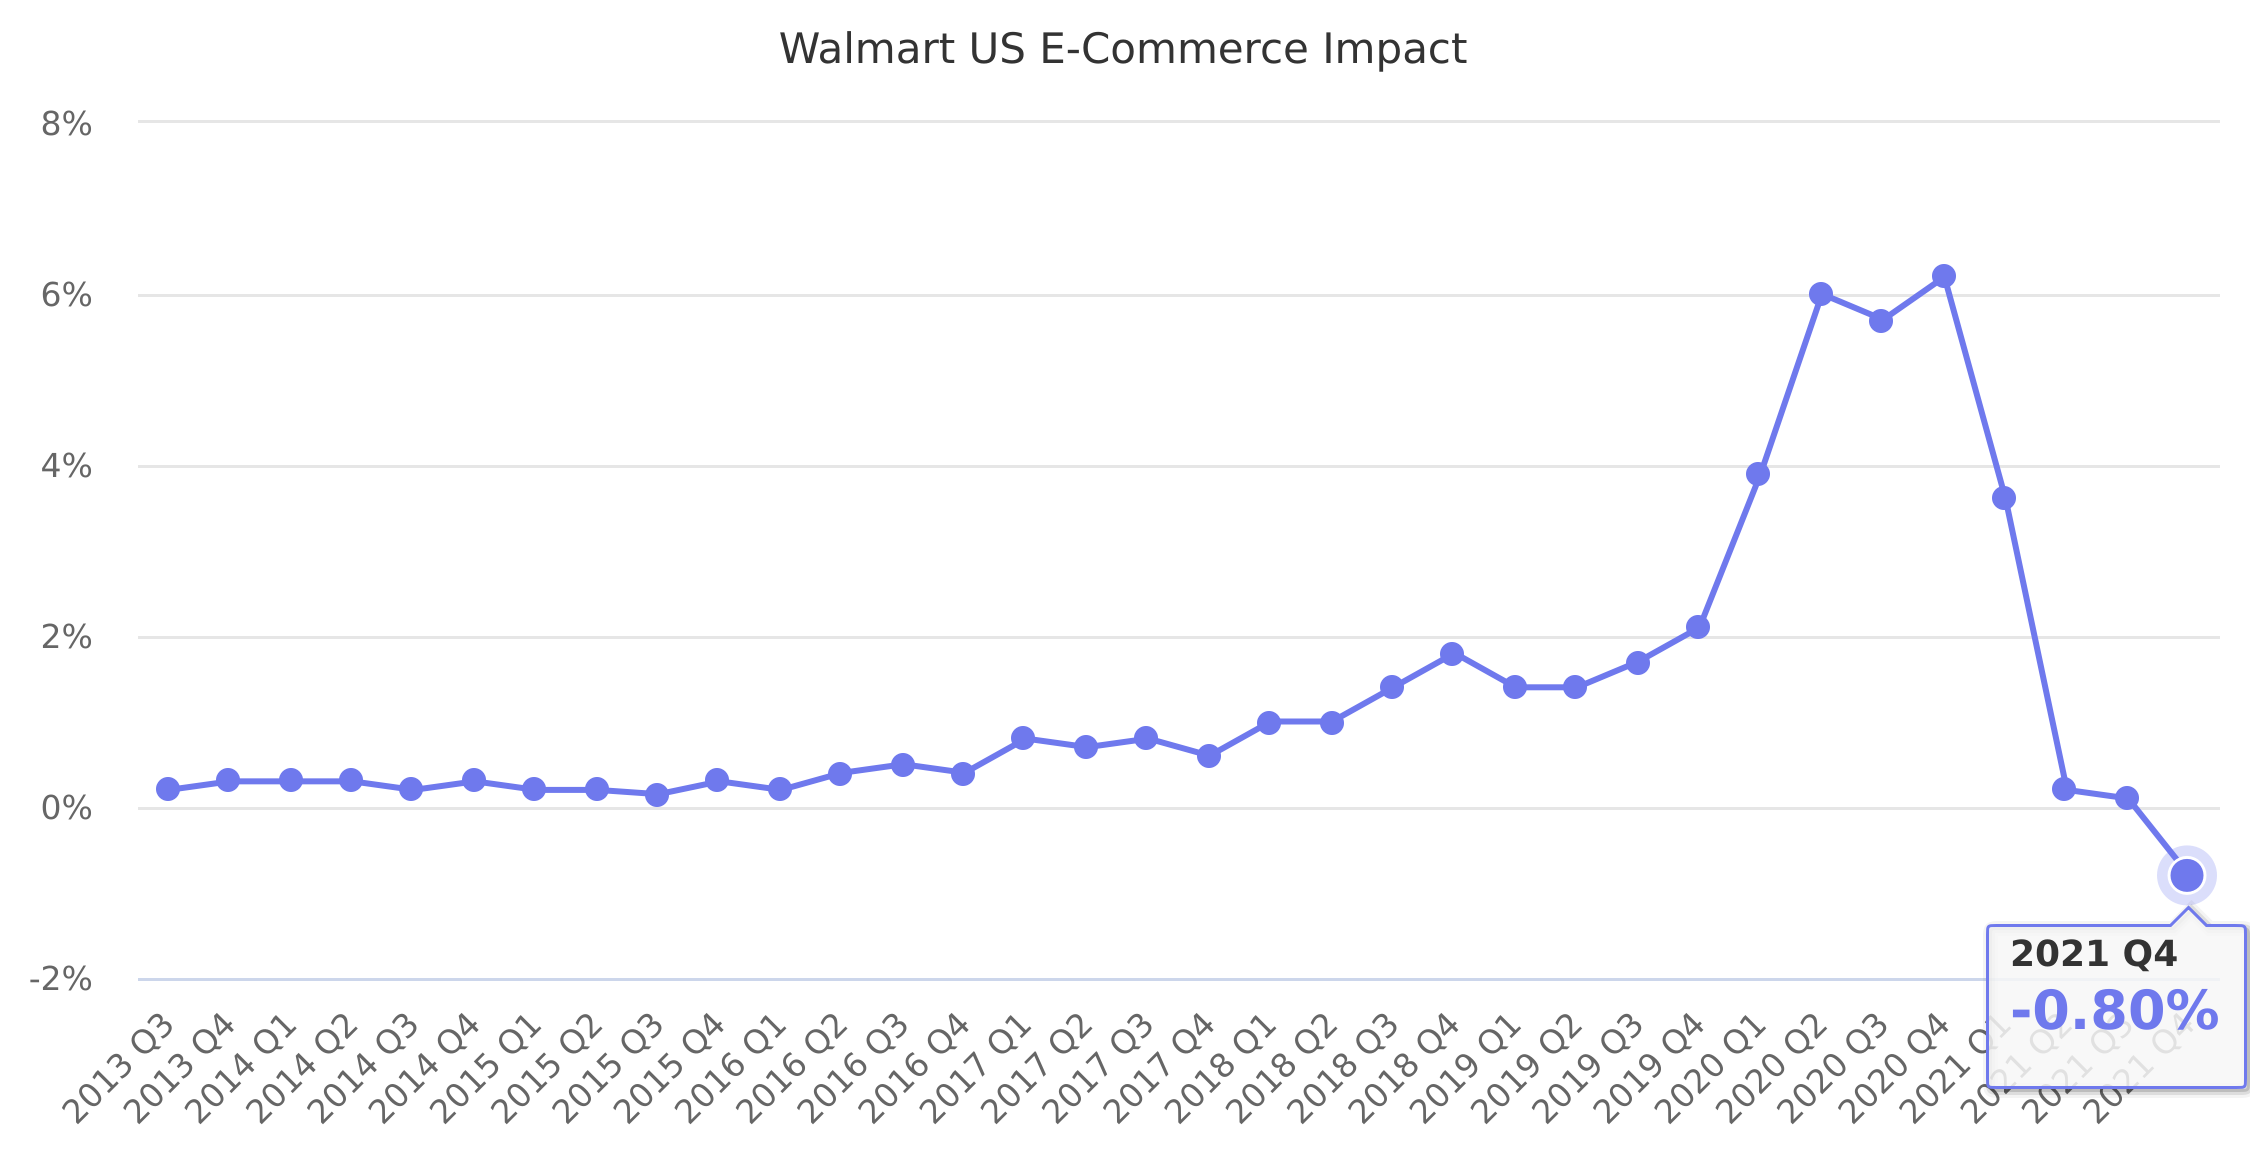 Walmart US E-Commerce Impact 2013-2017